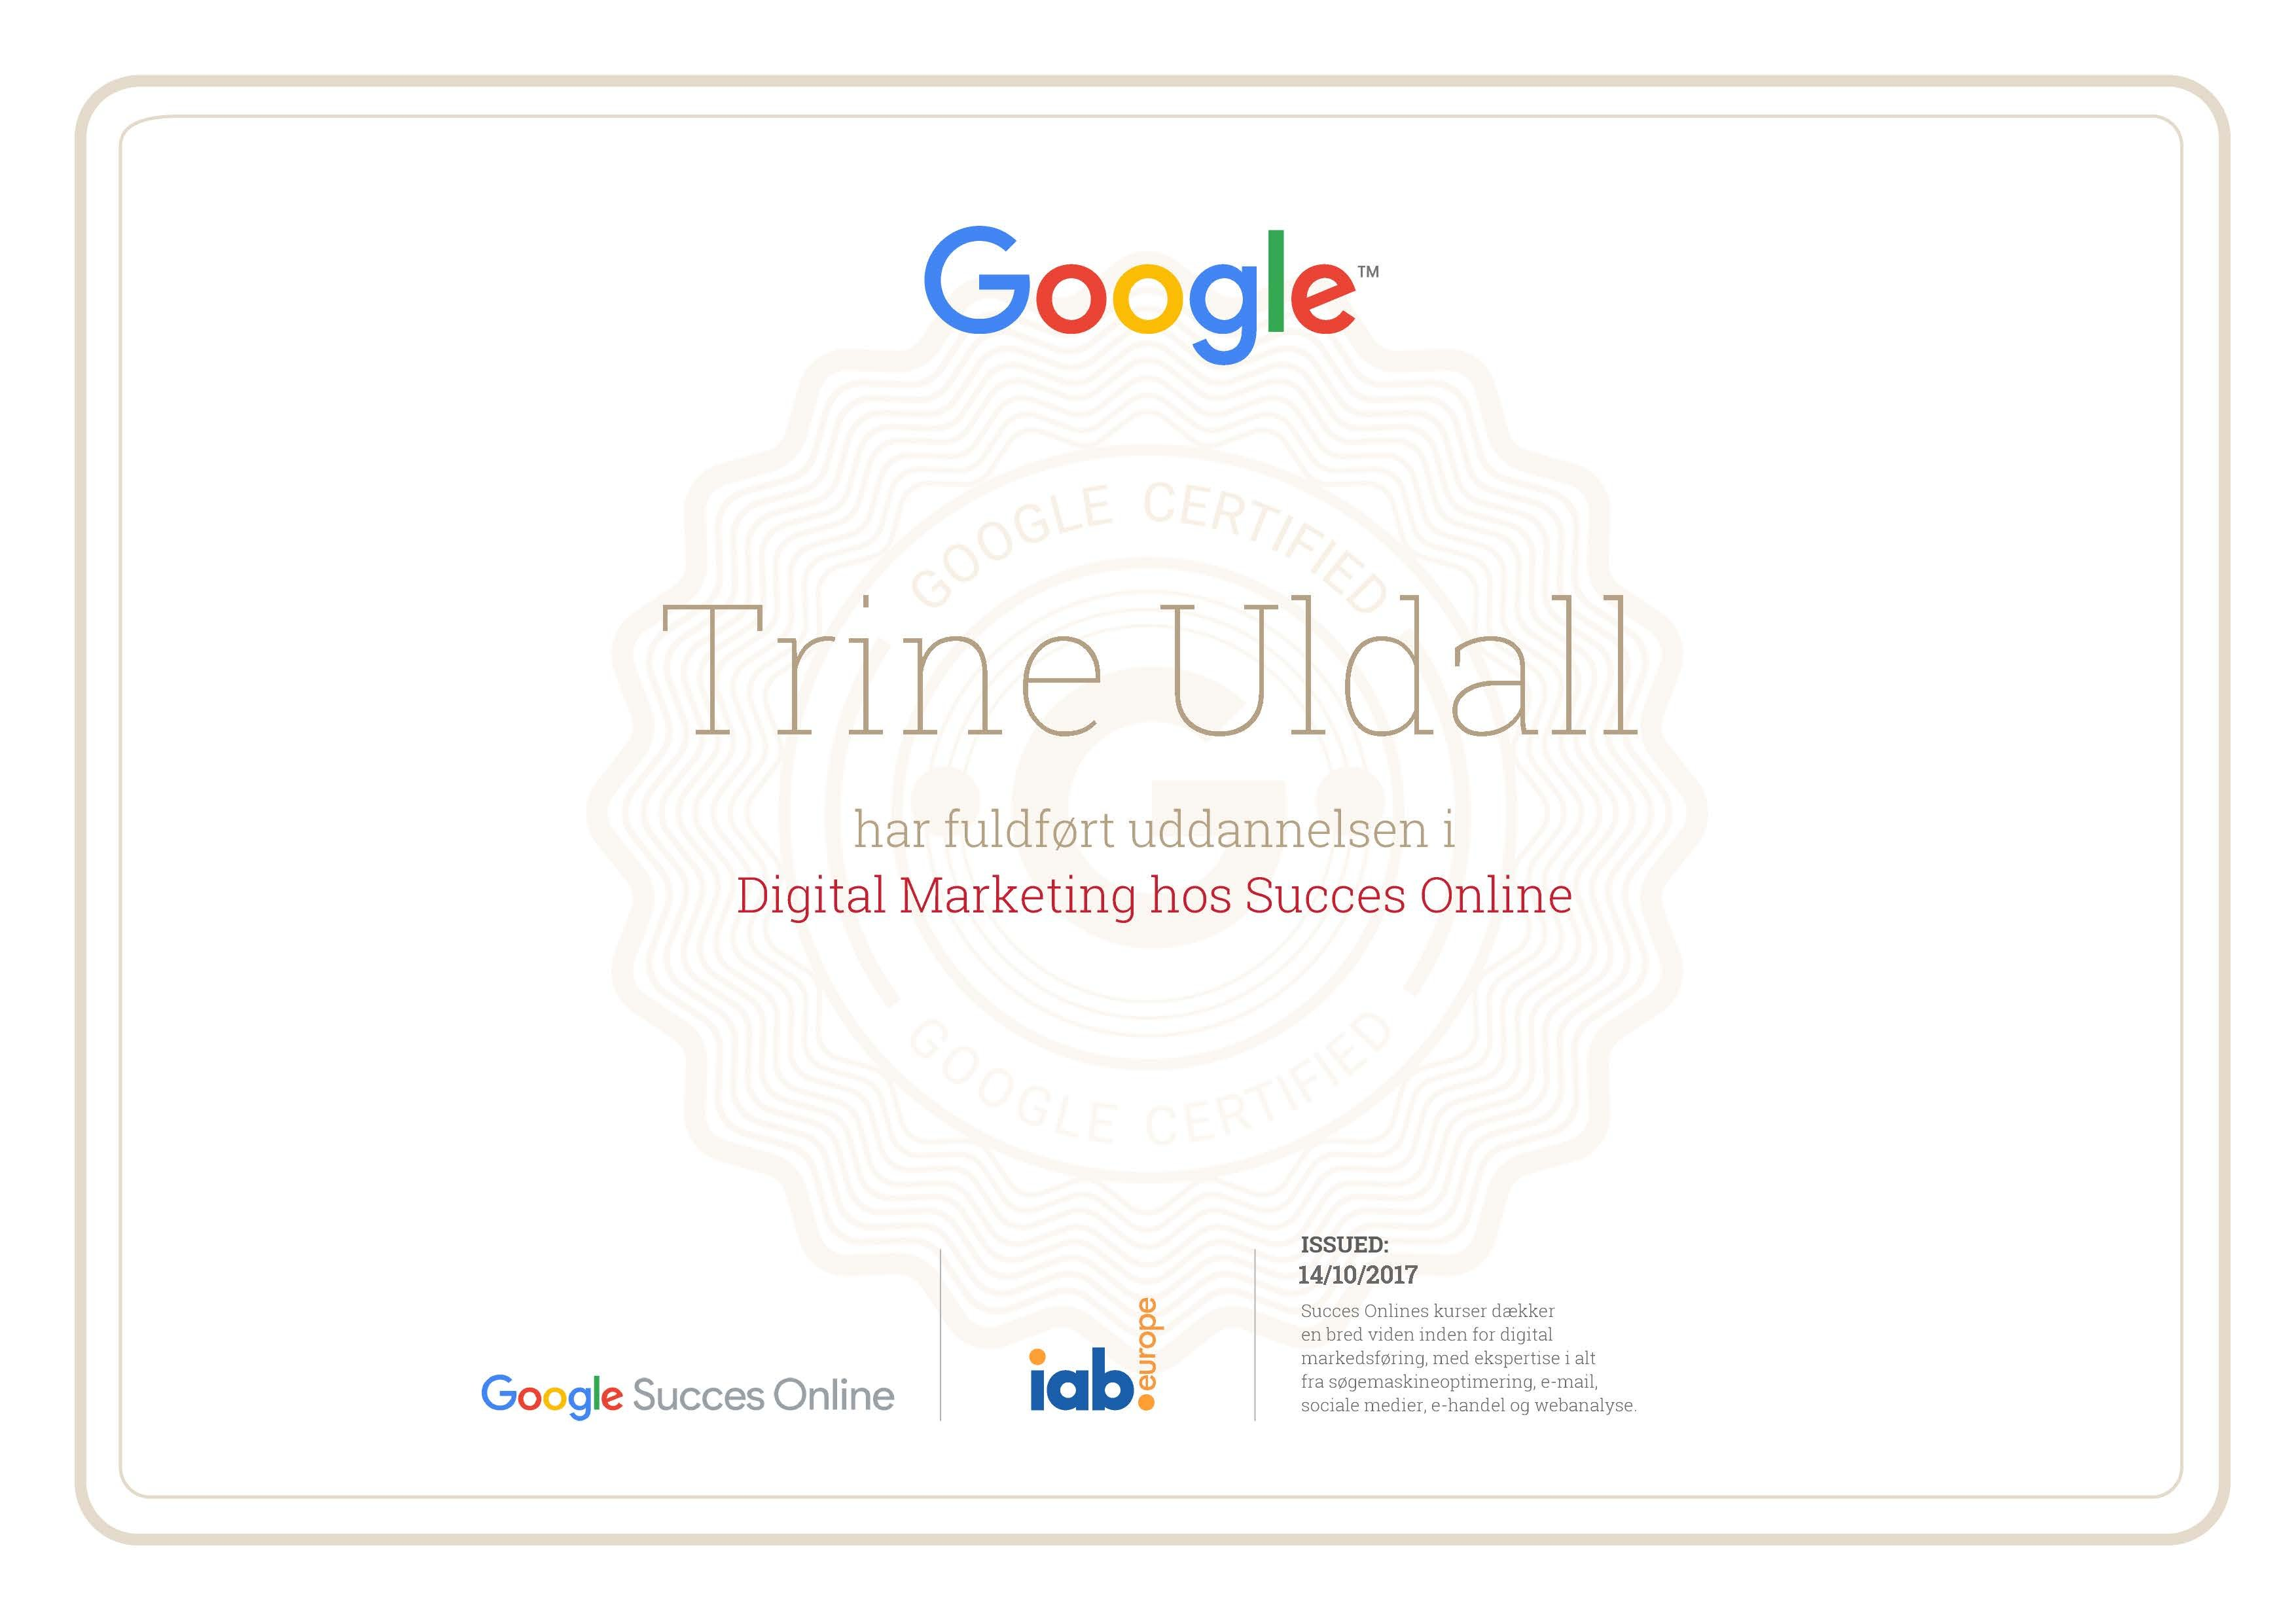 Google certificeret i digital marketing